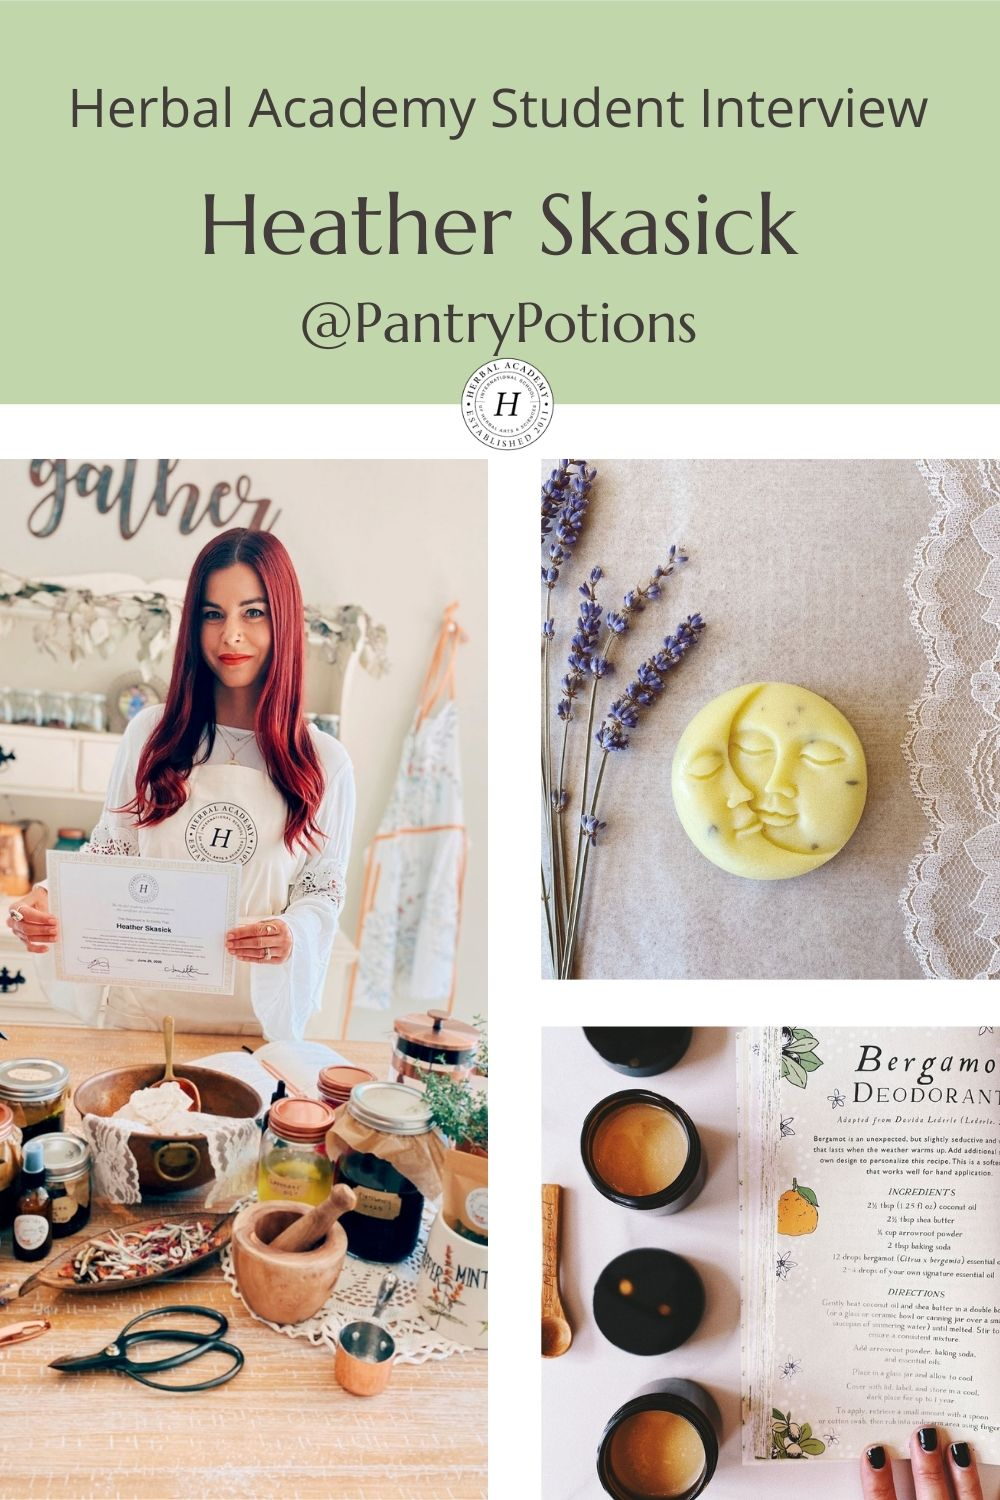 Heather Skasick Pantry Potions Pinterest Graphic